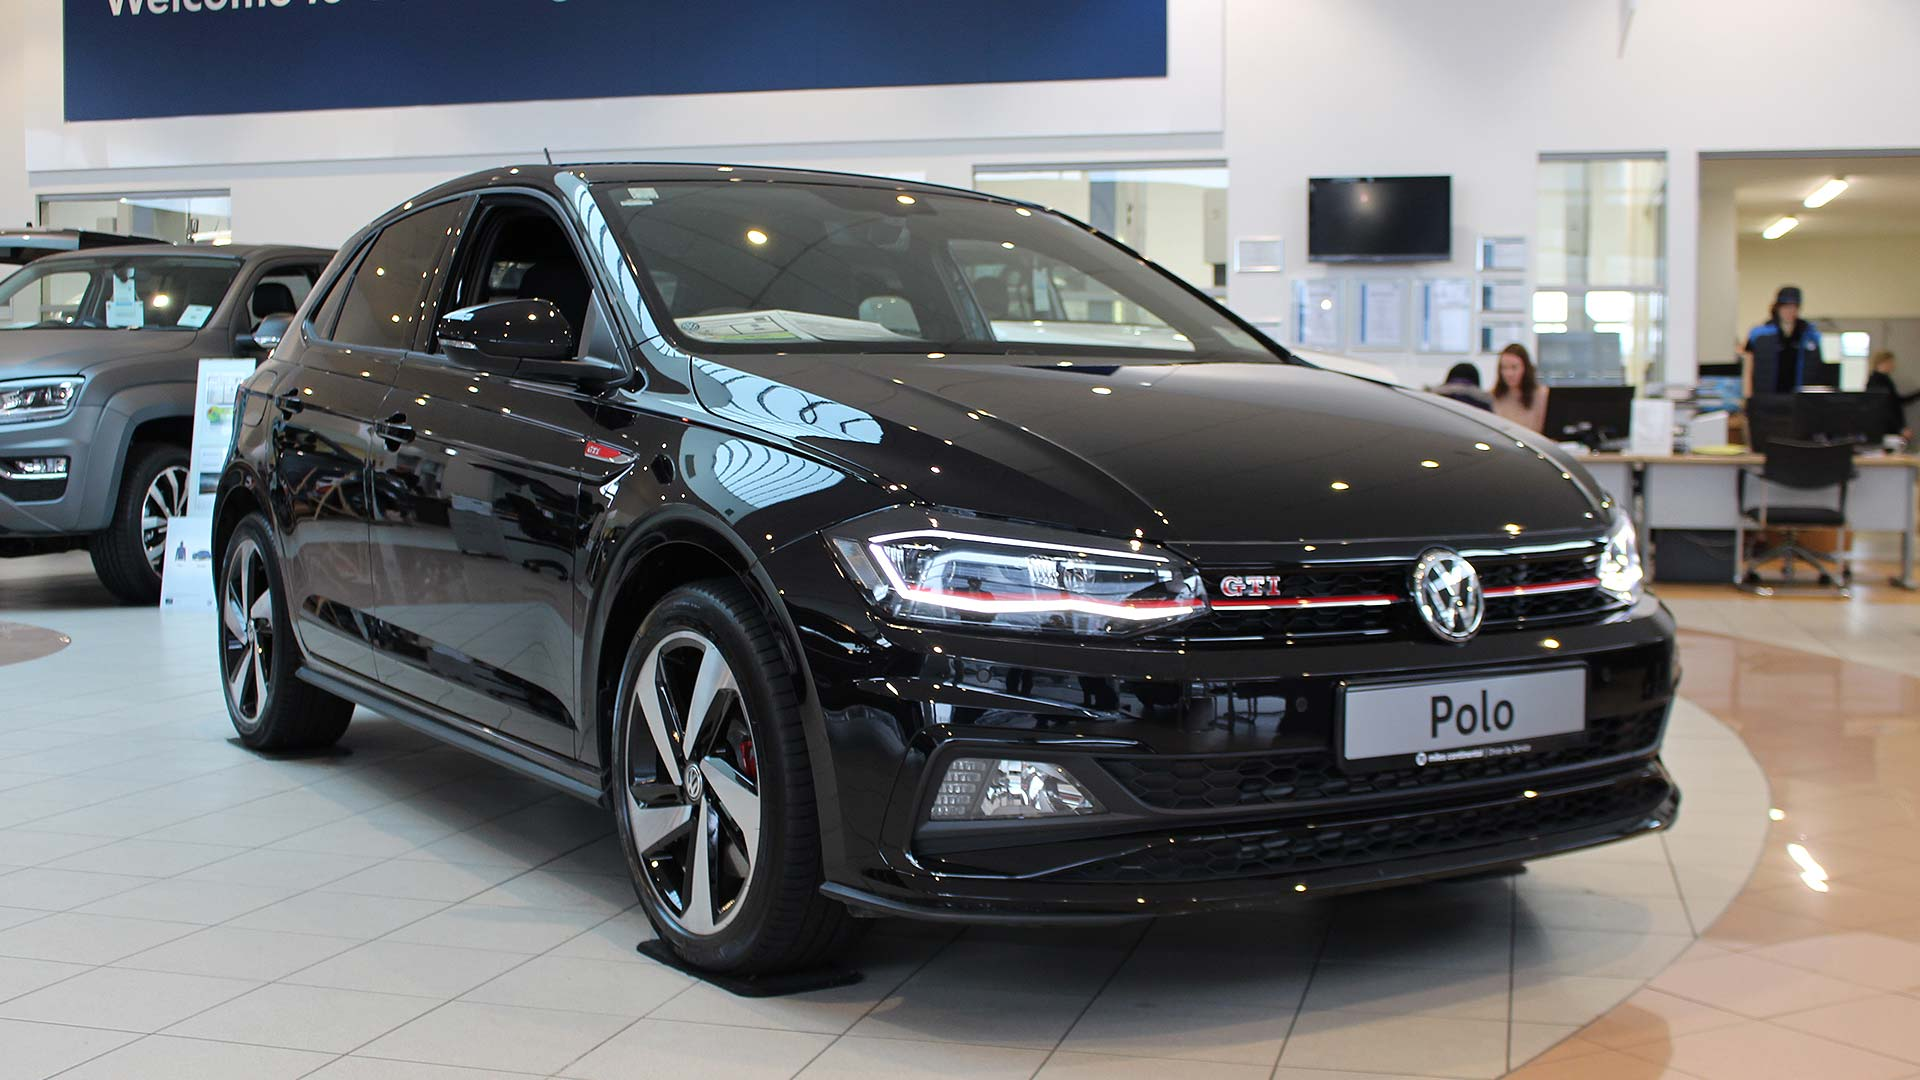 Some new Polo GTI Lease Deals! 🚗💨 For... - SRK Specialist Cars ...